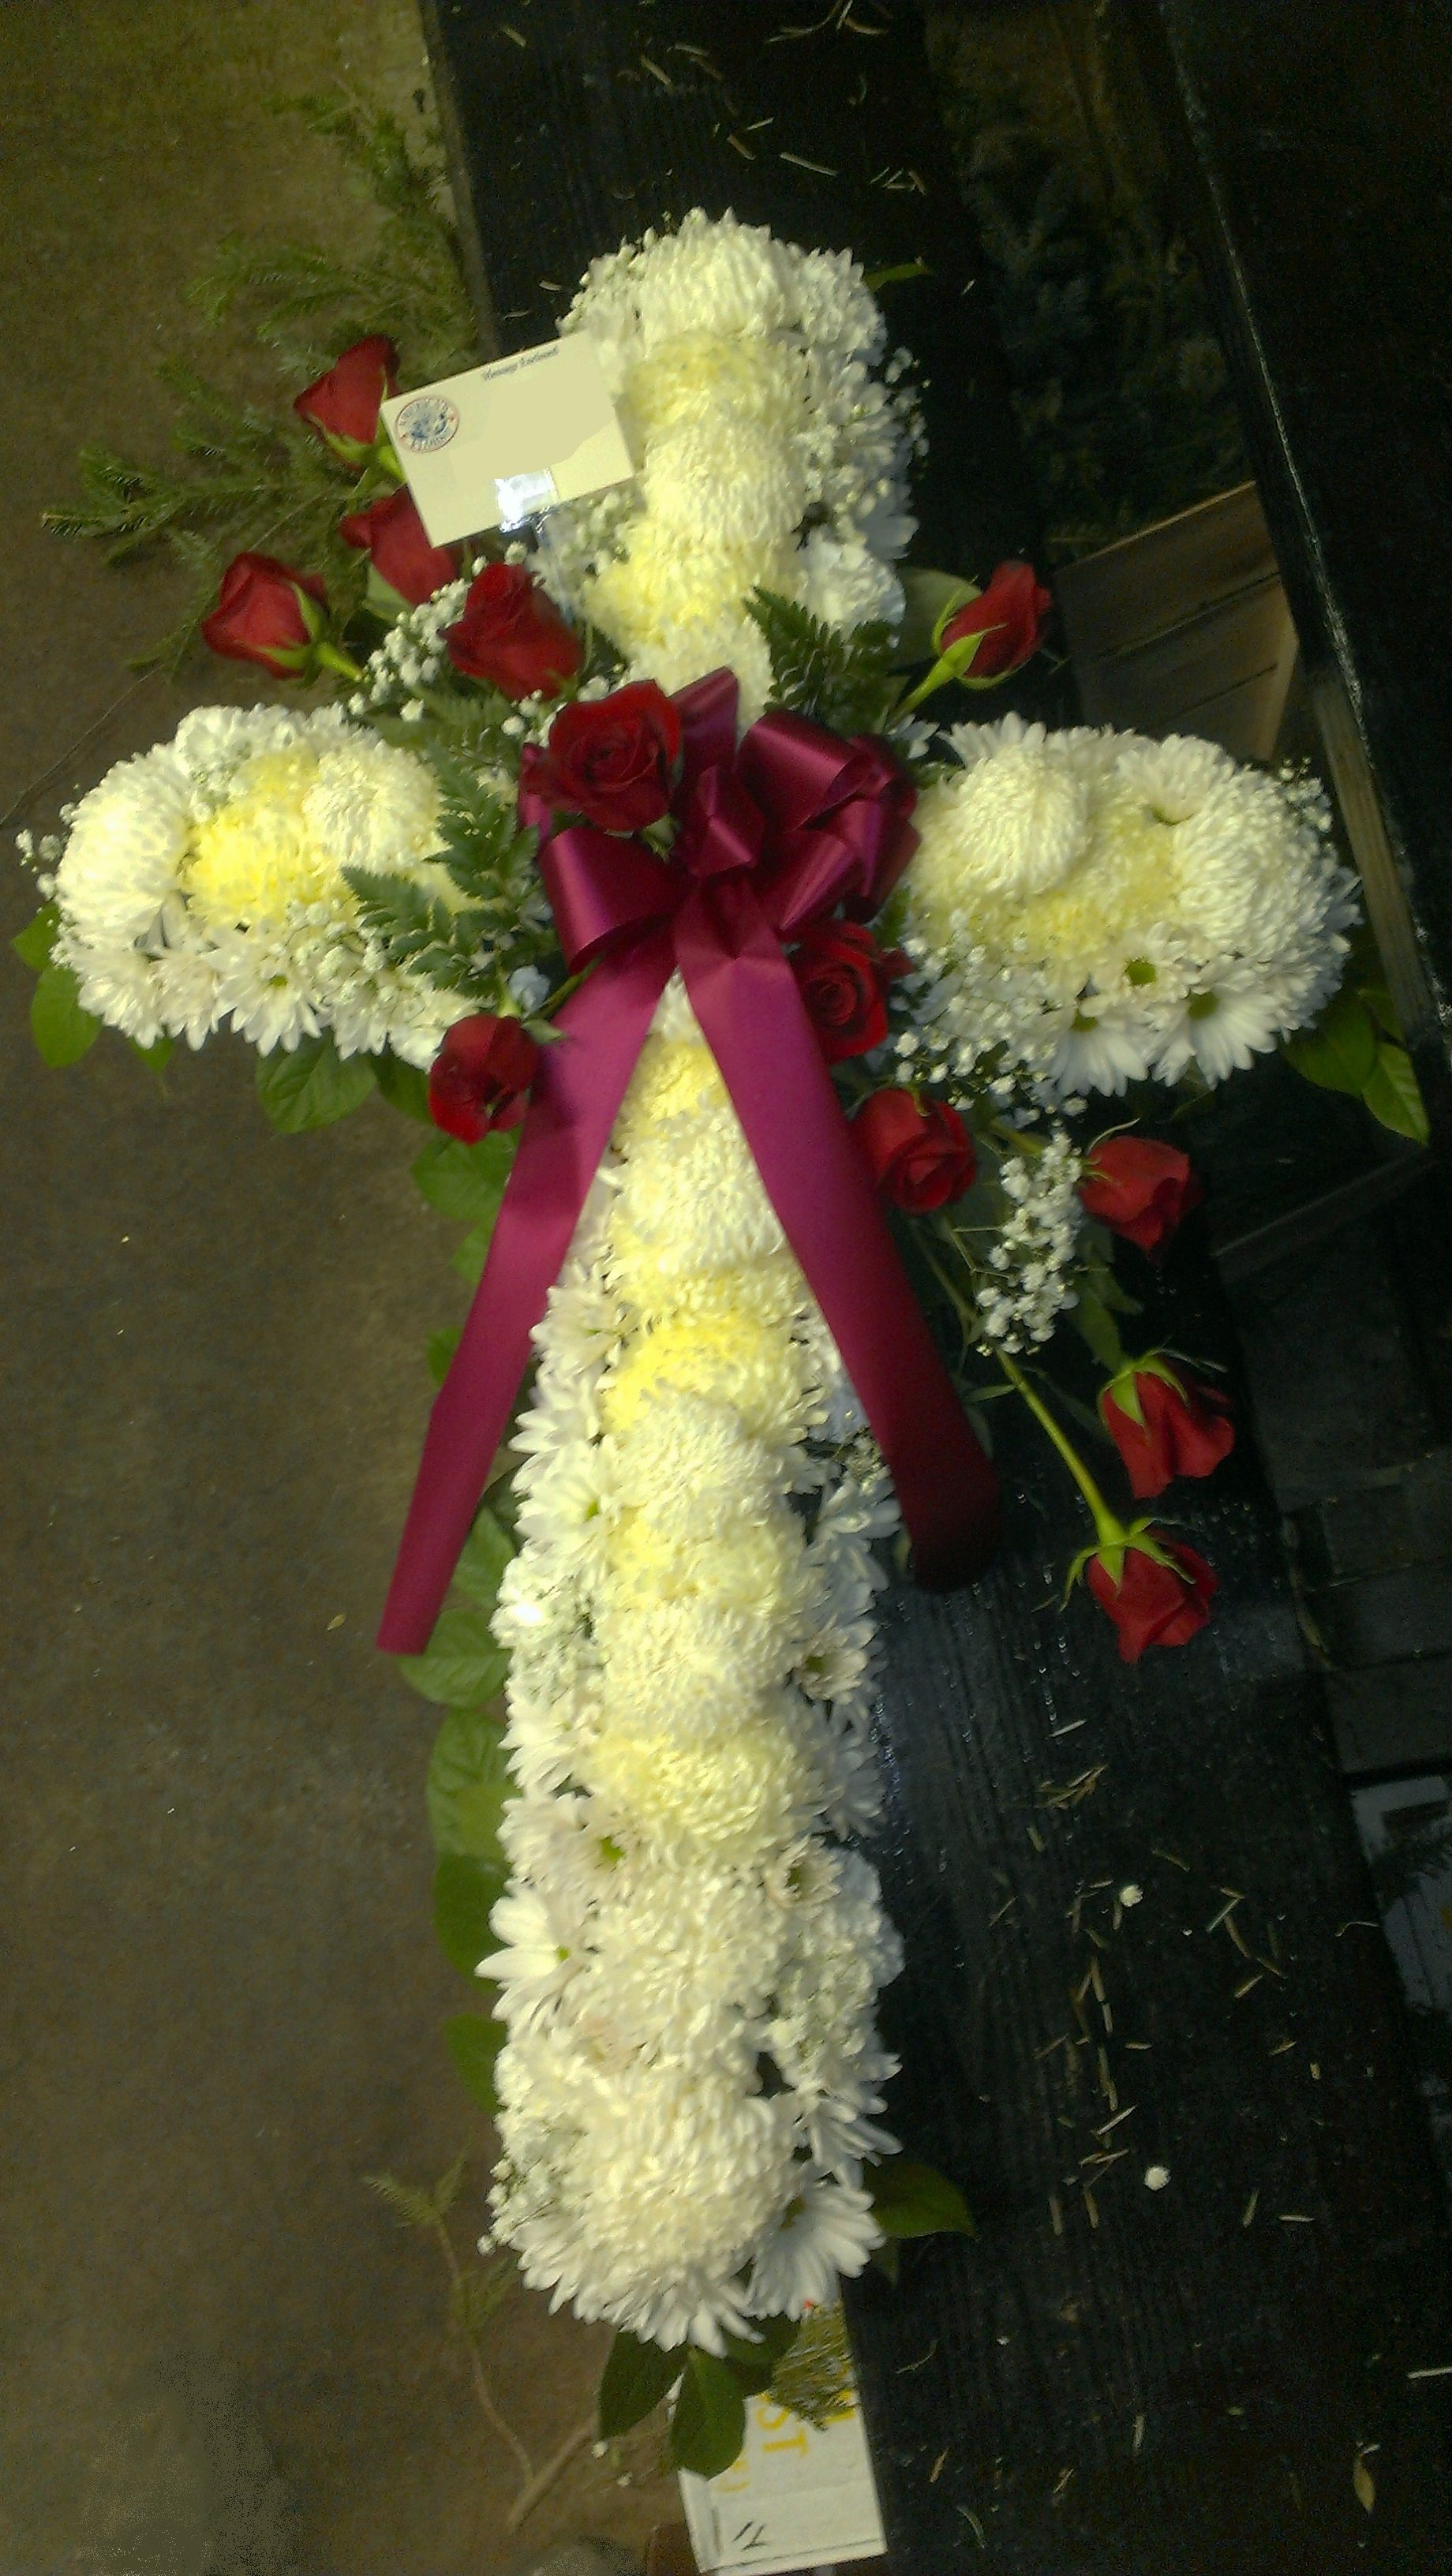 White funeral cross very intricately decorated